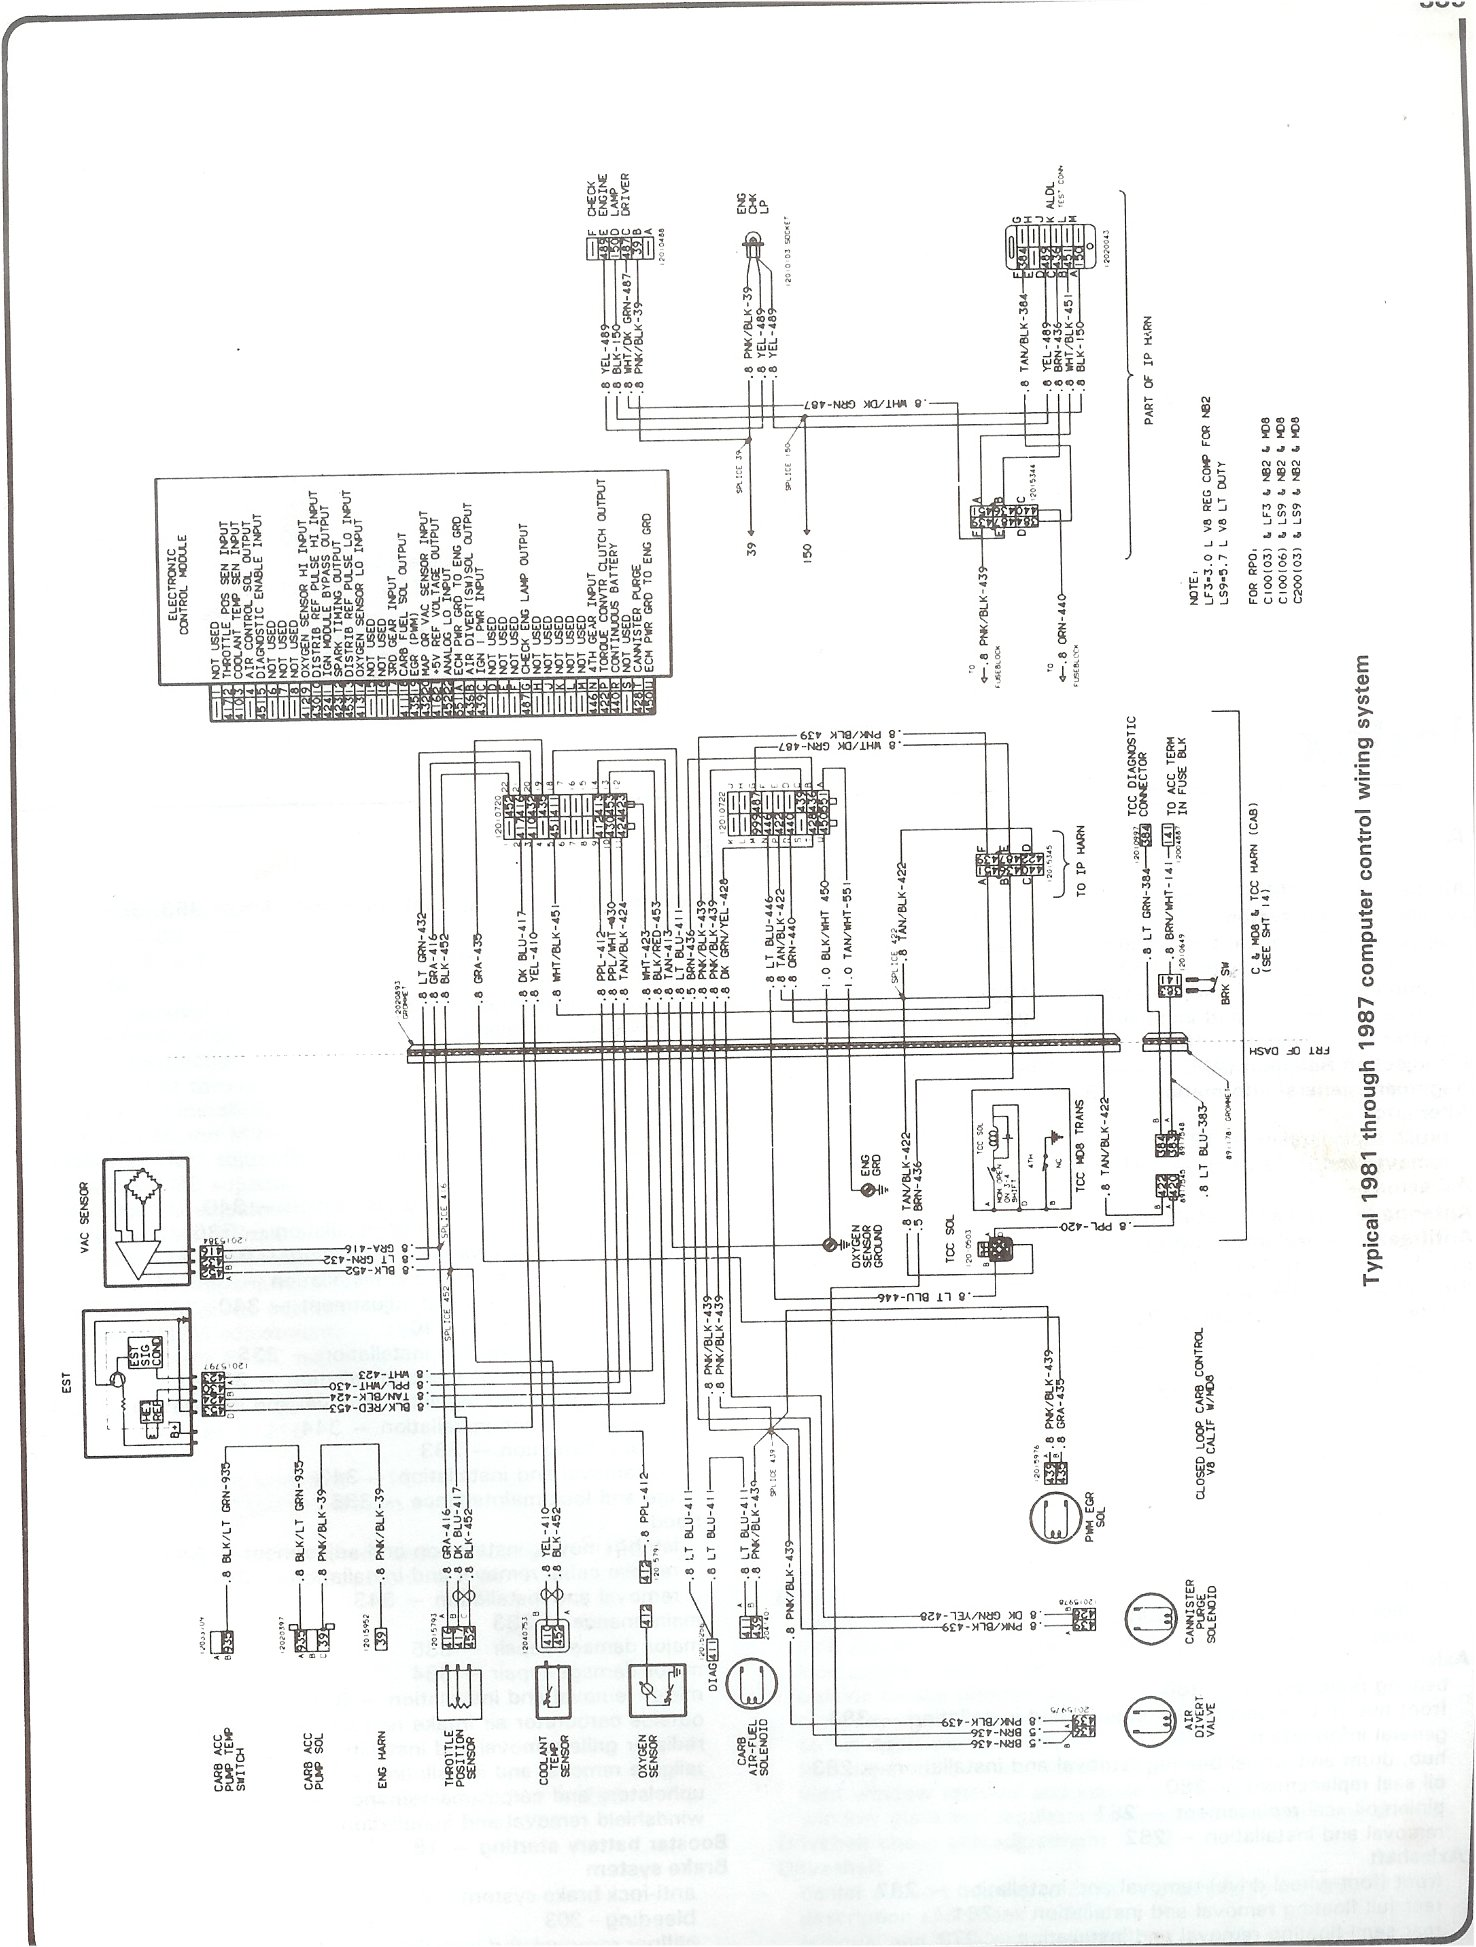 81 87_computer_control_wiring complete 73 87 wiring diagrams 1990 Chevy Truck Wiring Diagram at fashall.co